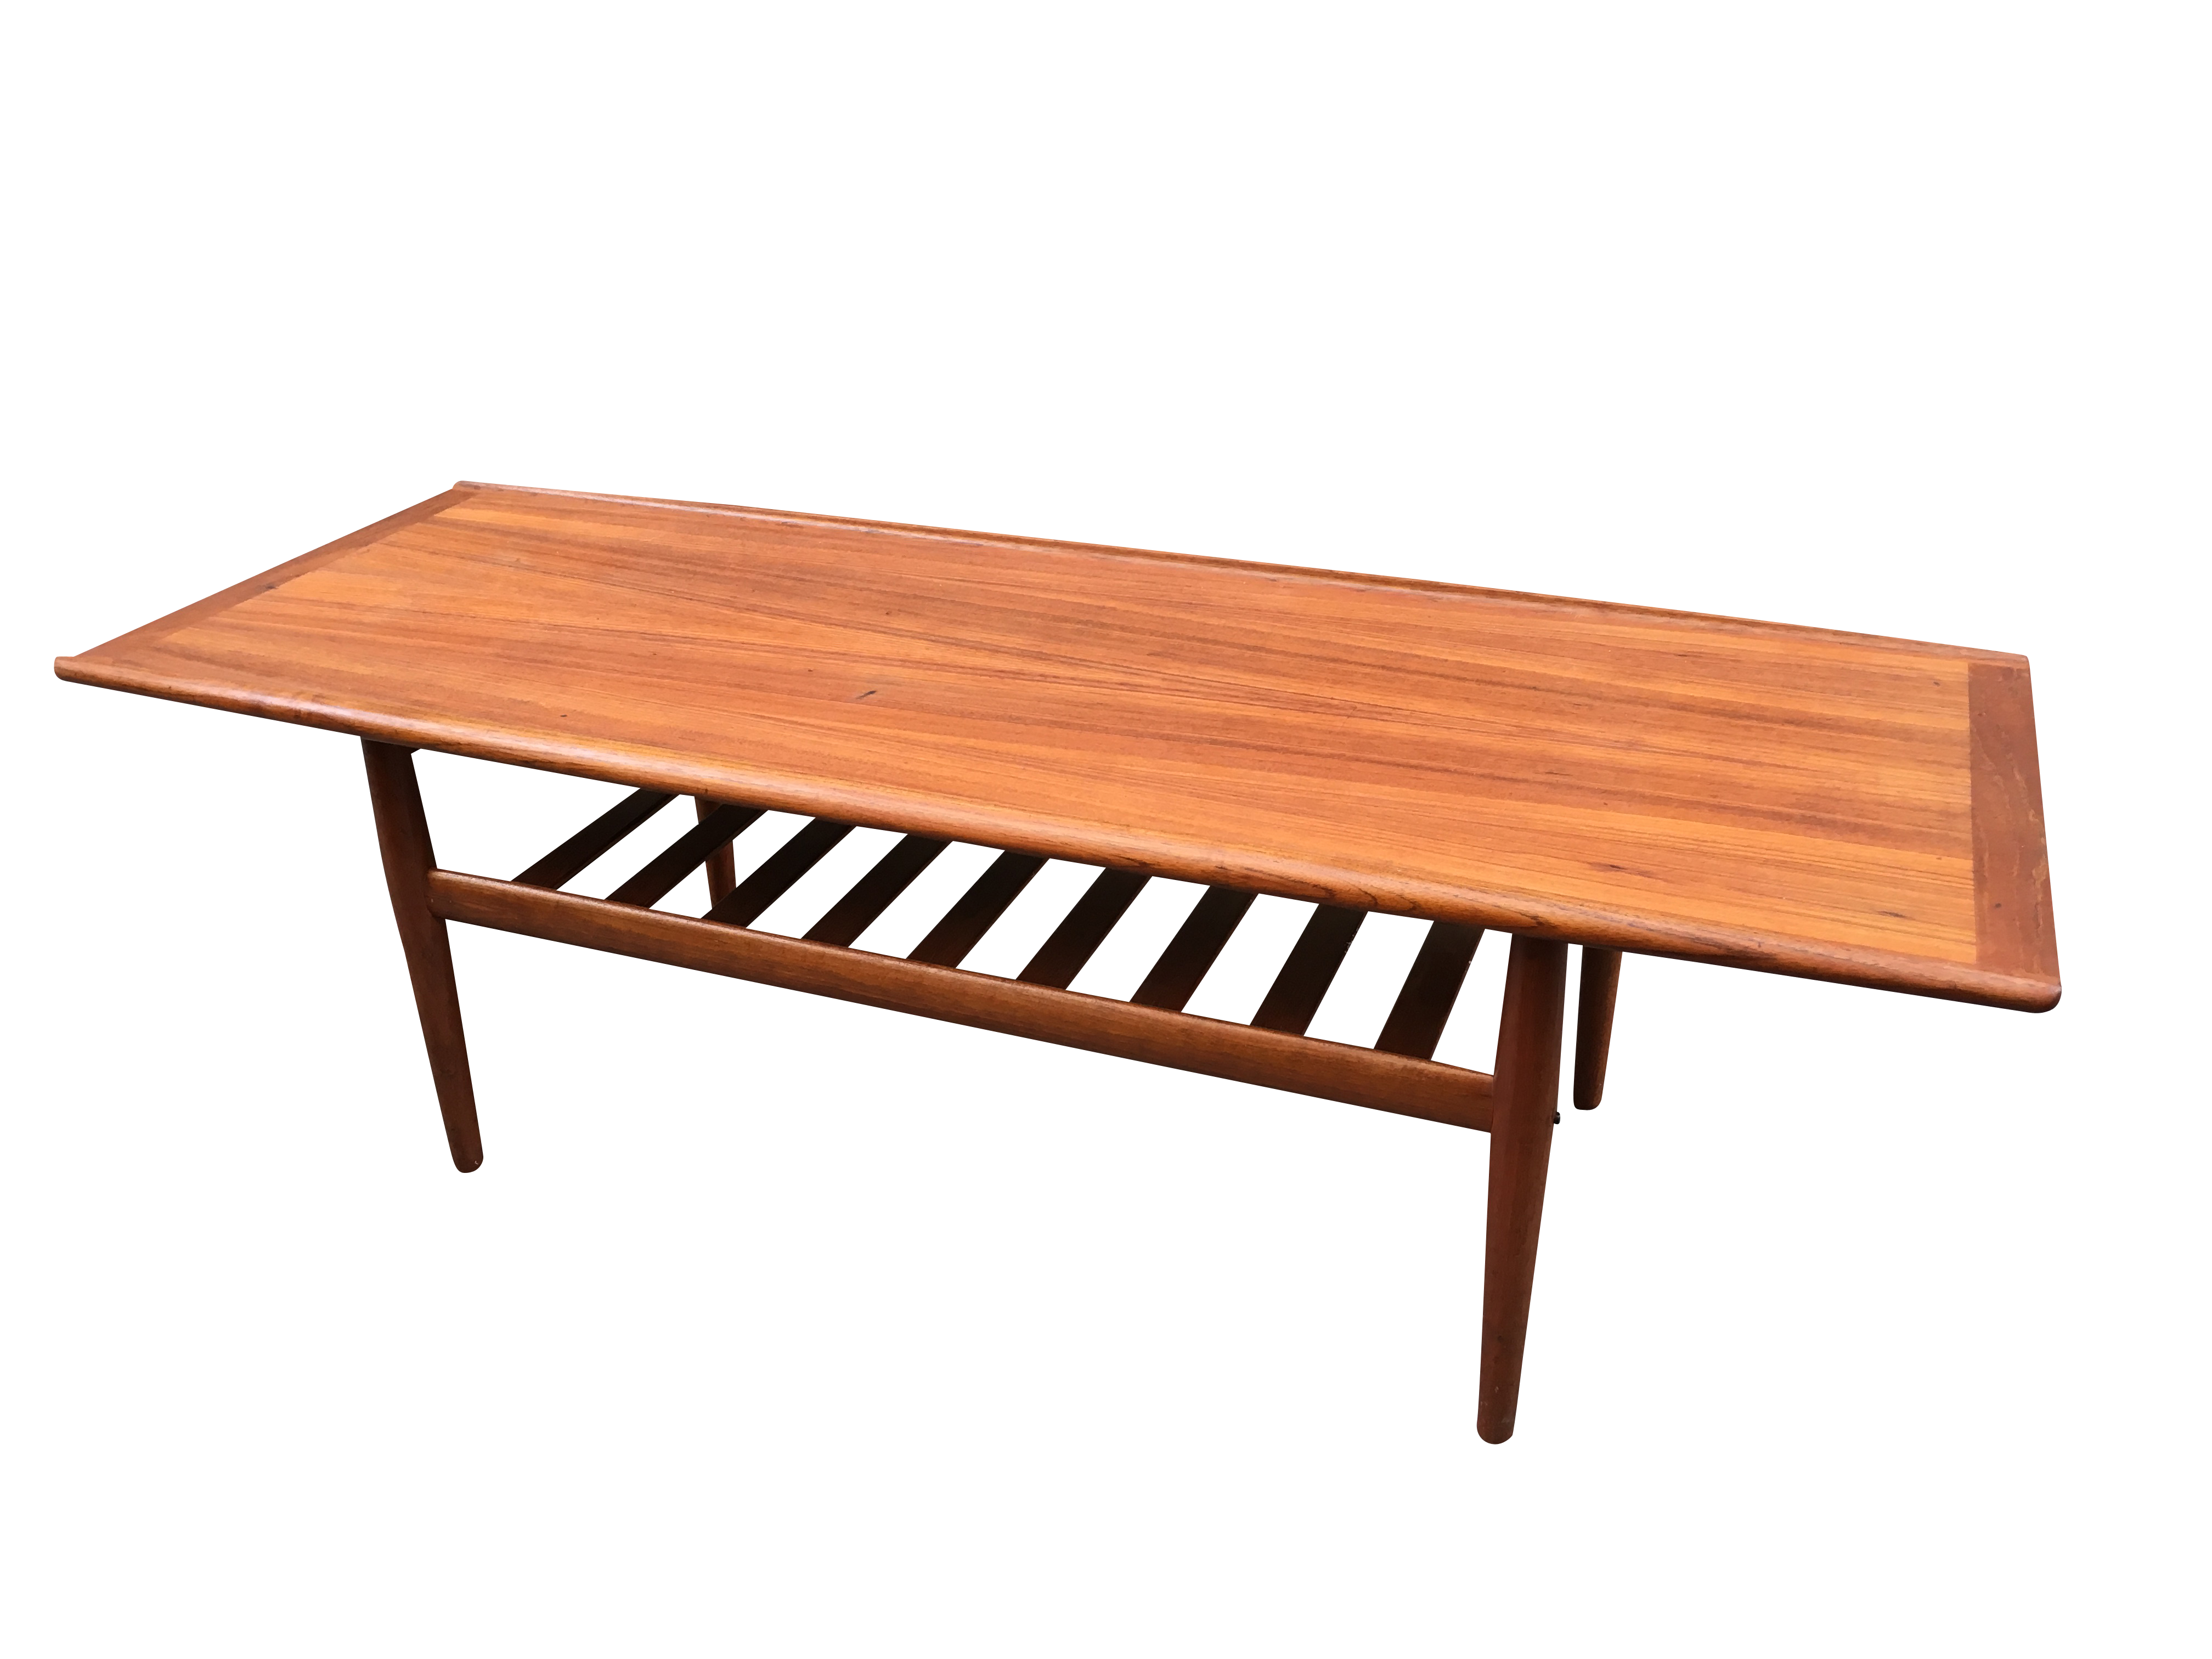 Coffee table Grete Jalk for Glostrup Mobelfabrik Sweden 1950s